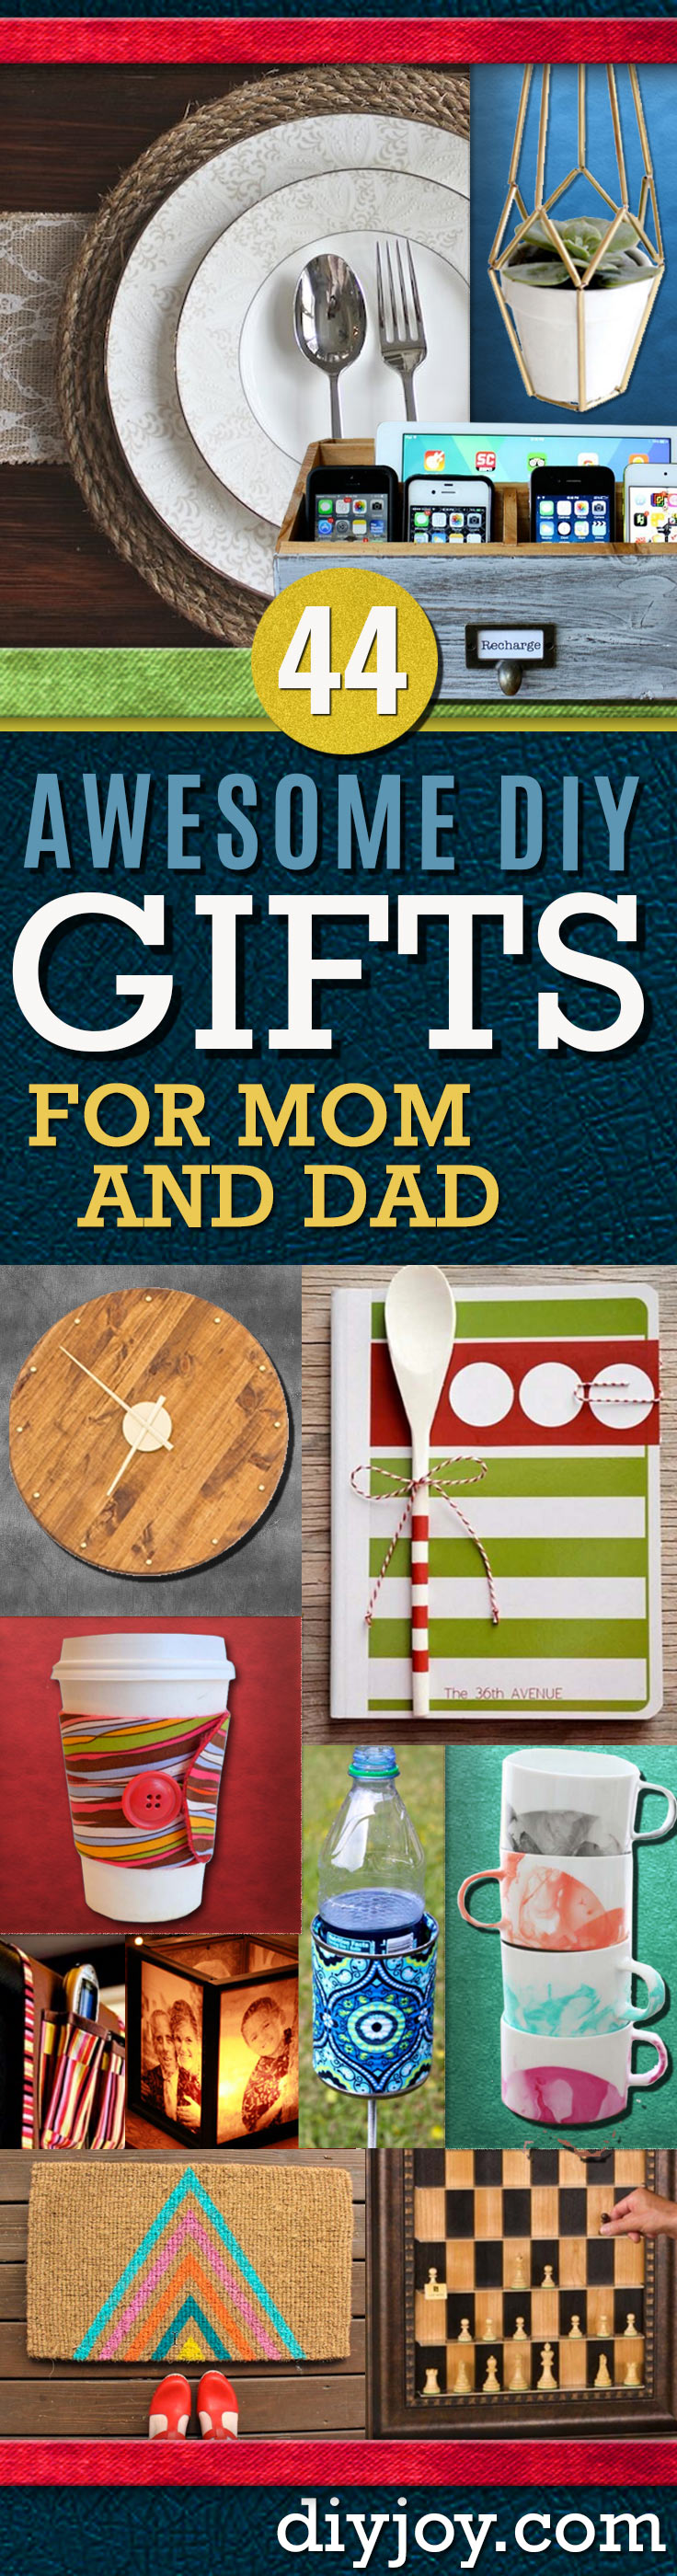 Easy Homemade Gifts For Dad - Urban Home Interior •